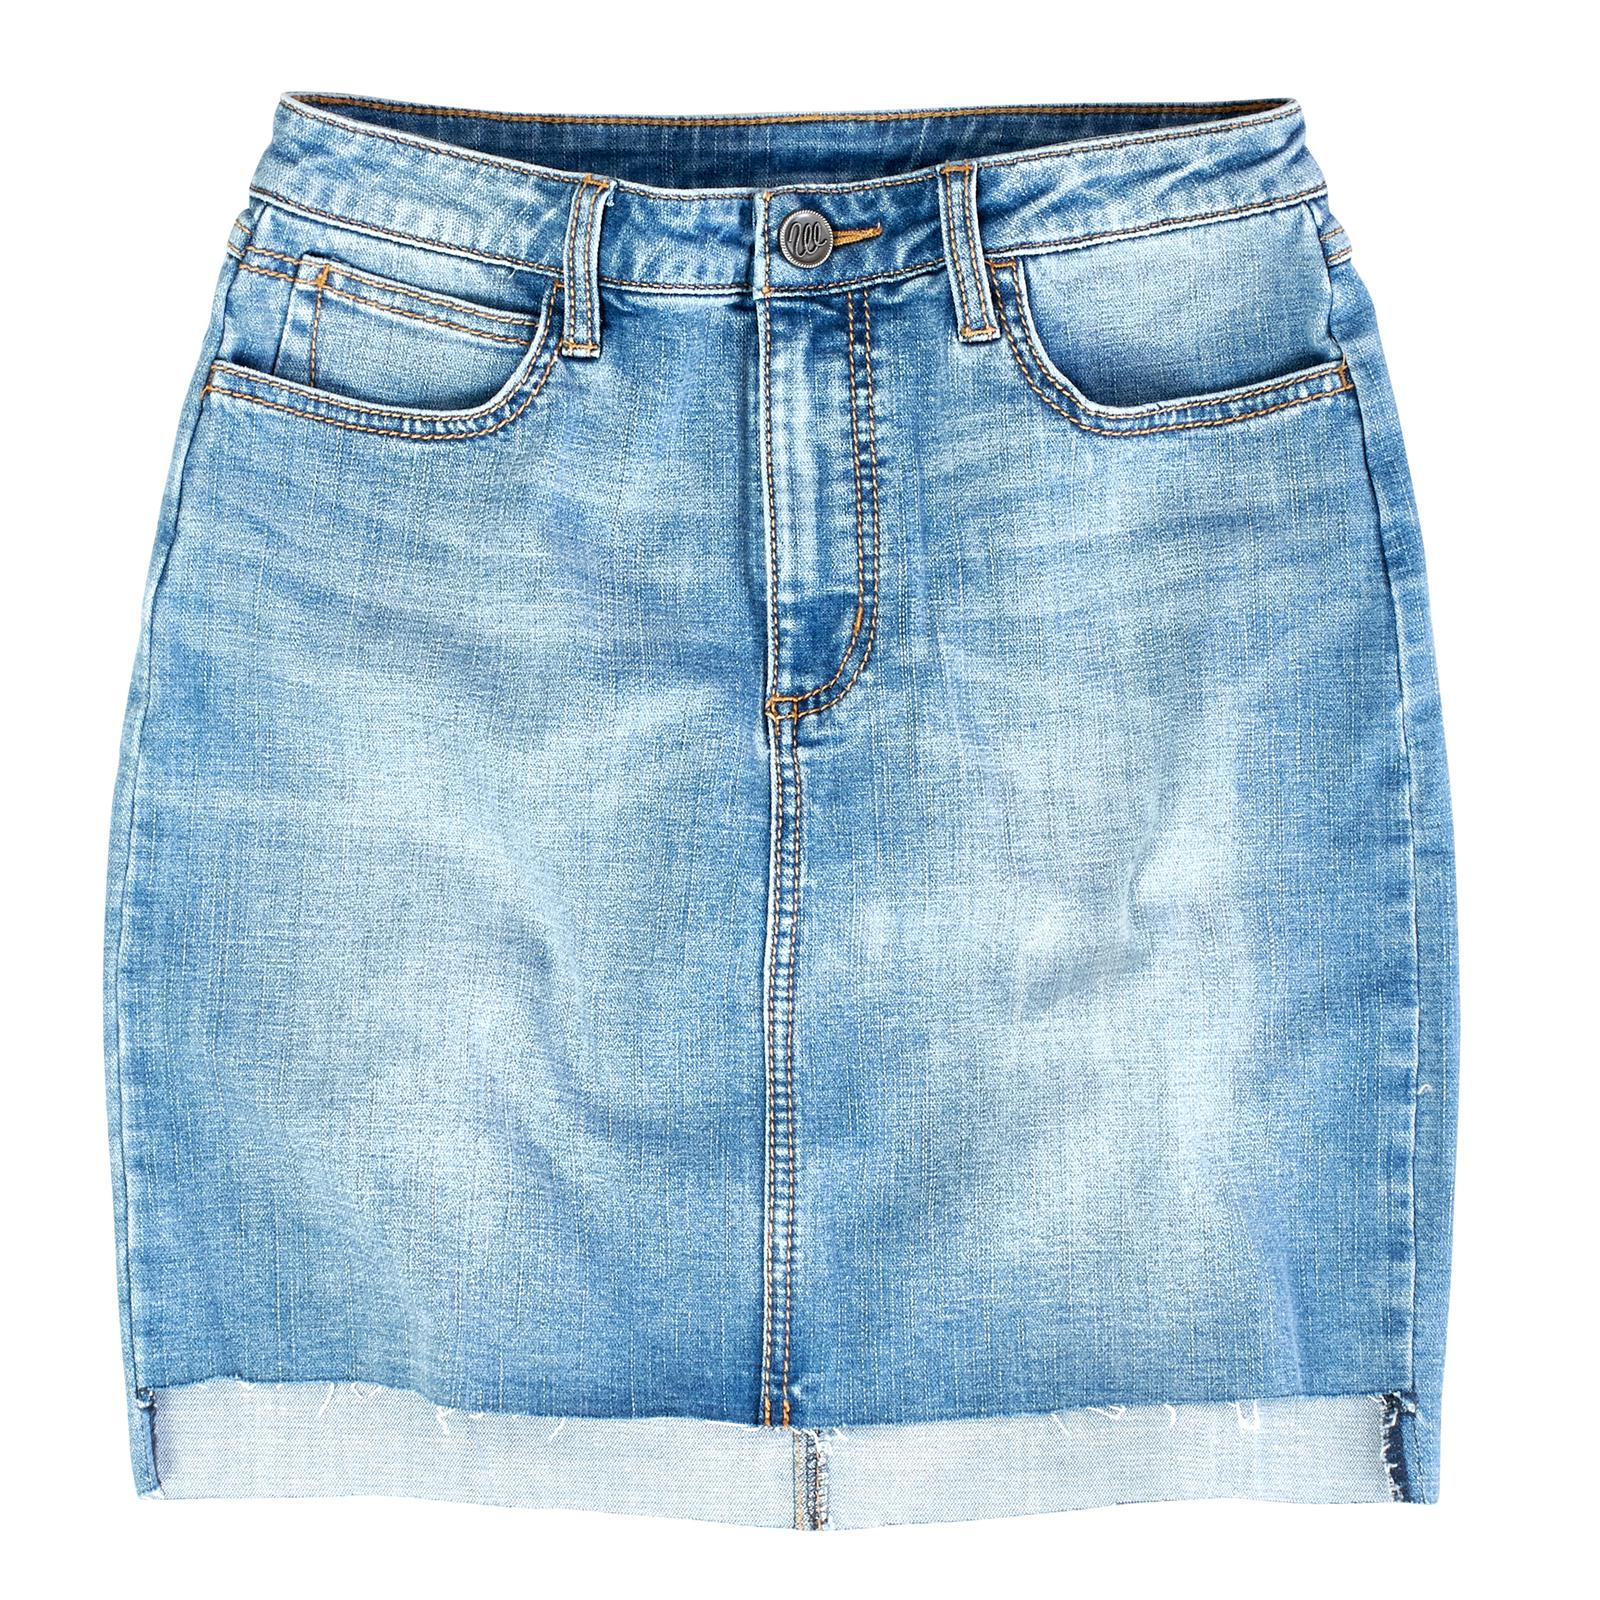 Wrangler Women's Denim Mini Western Skirt